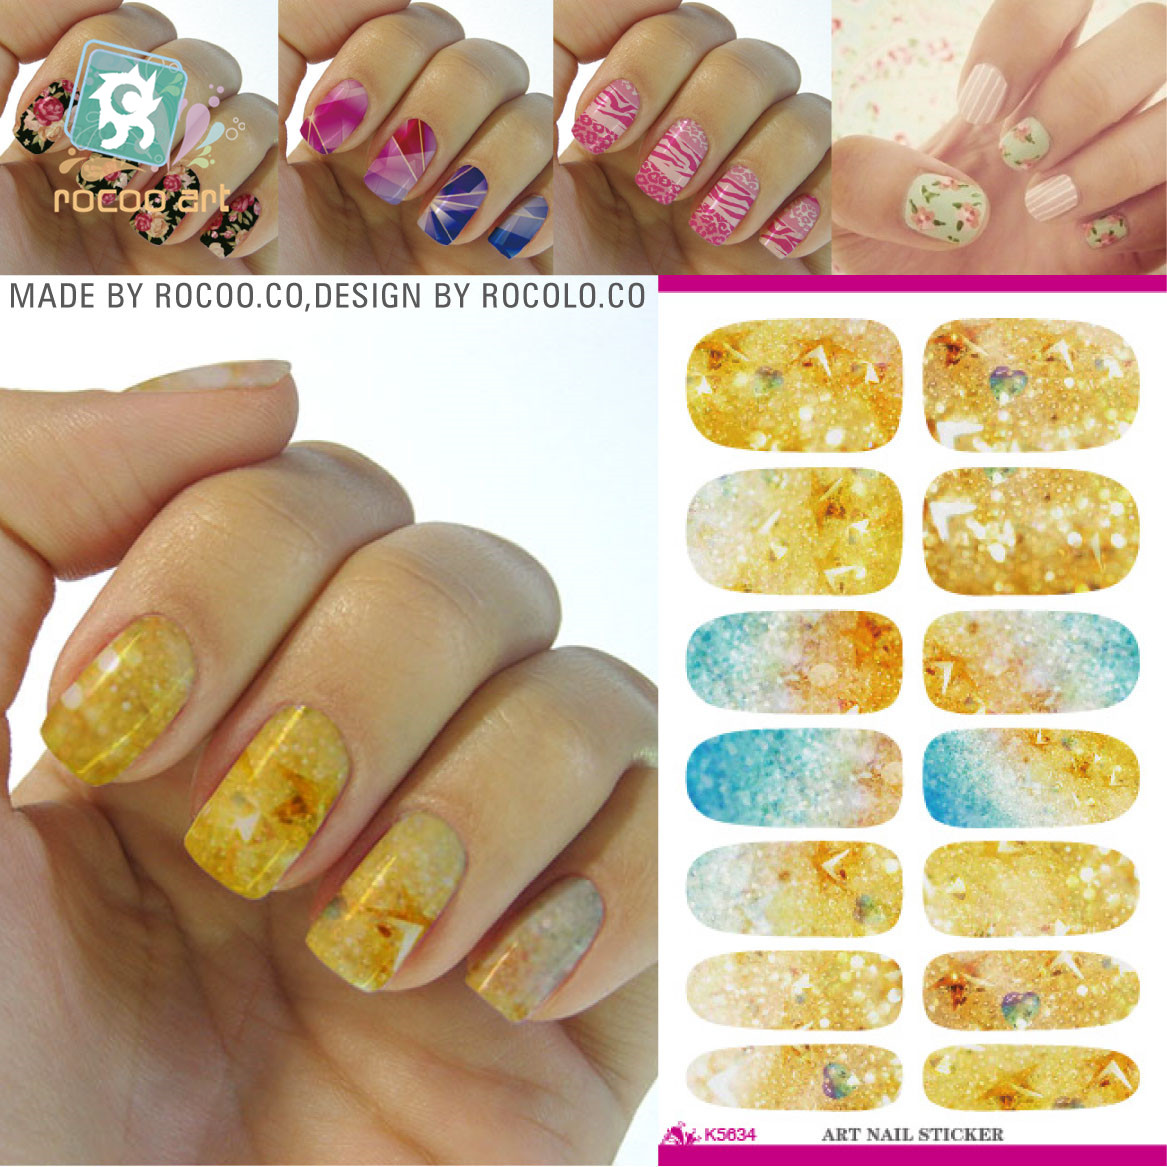 Gold Flash Bling Bling Nail Diy Art Tips Decoration Sticker Nails Wraps Styling Glitter Rhinestones Water Transfer Sticker(China (Mainland))